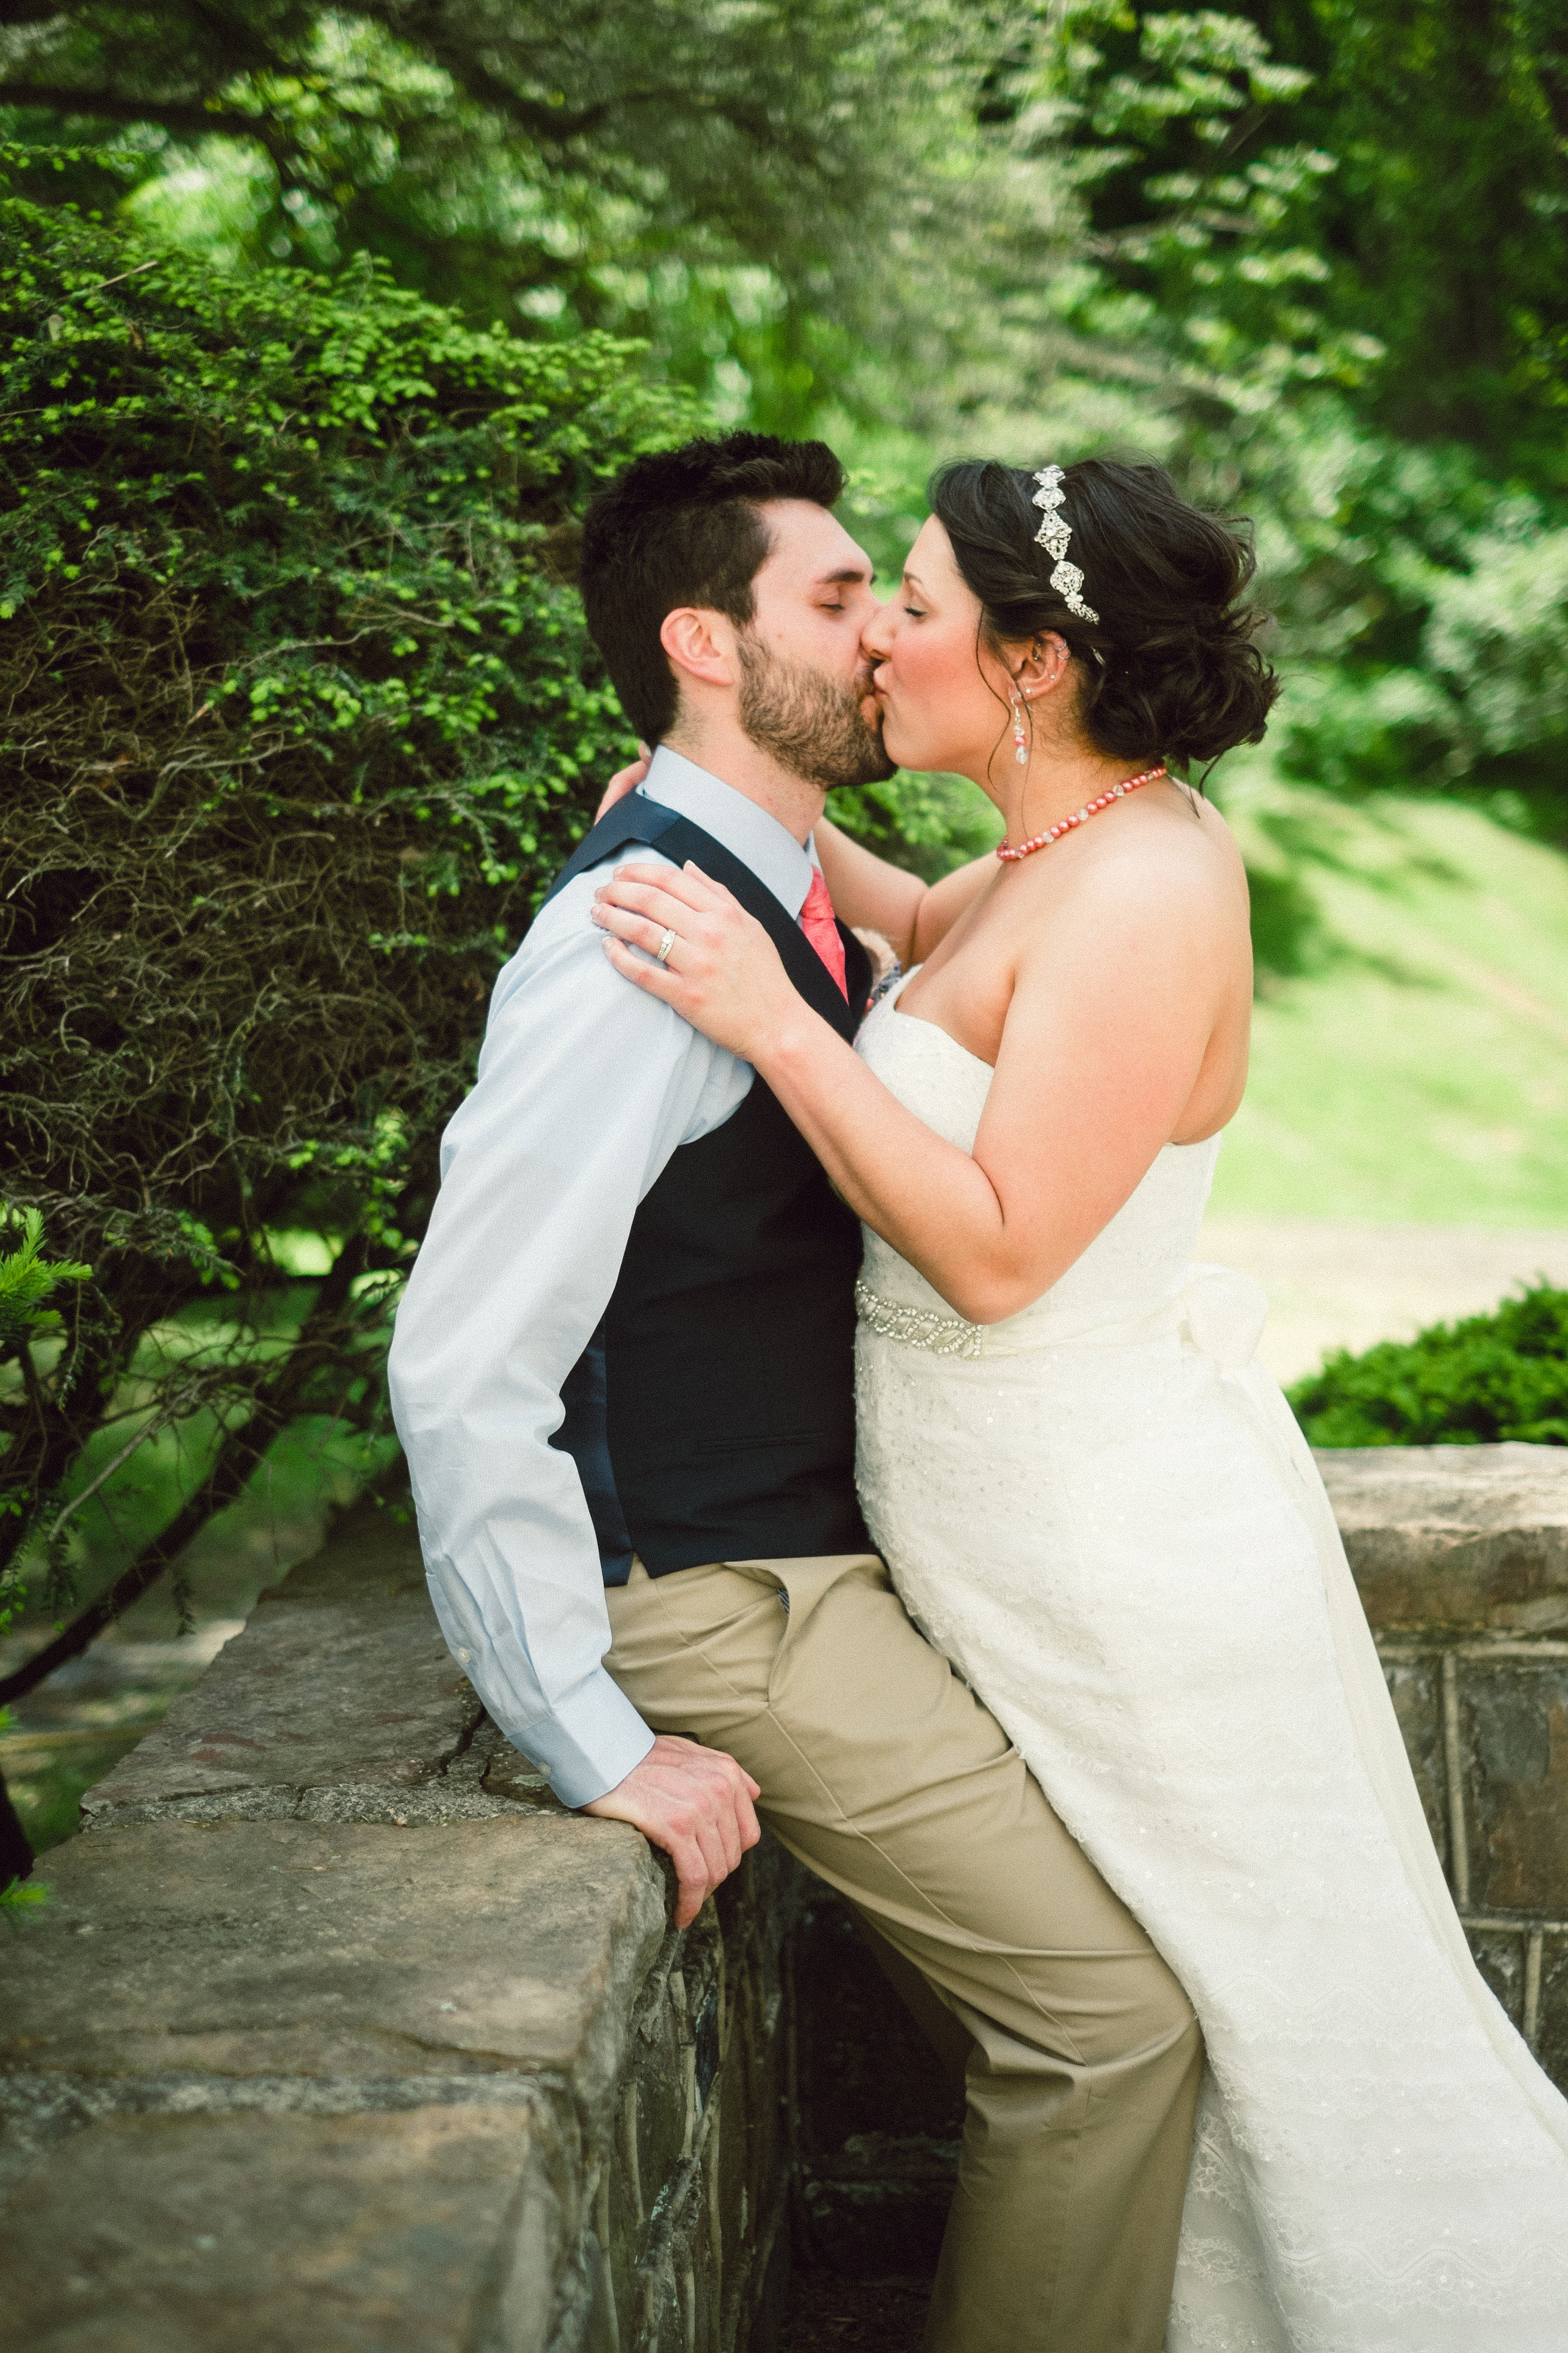 PennsylvaniaWeddingPhotographer-114.jpg